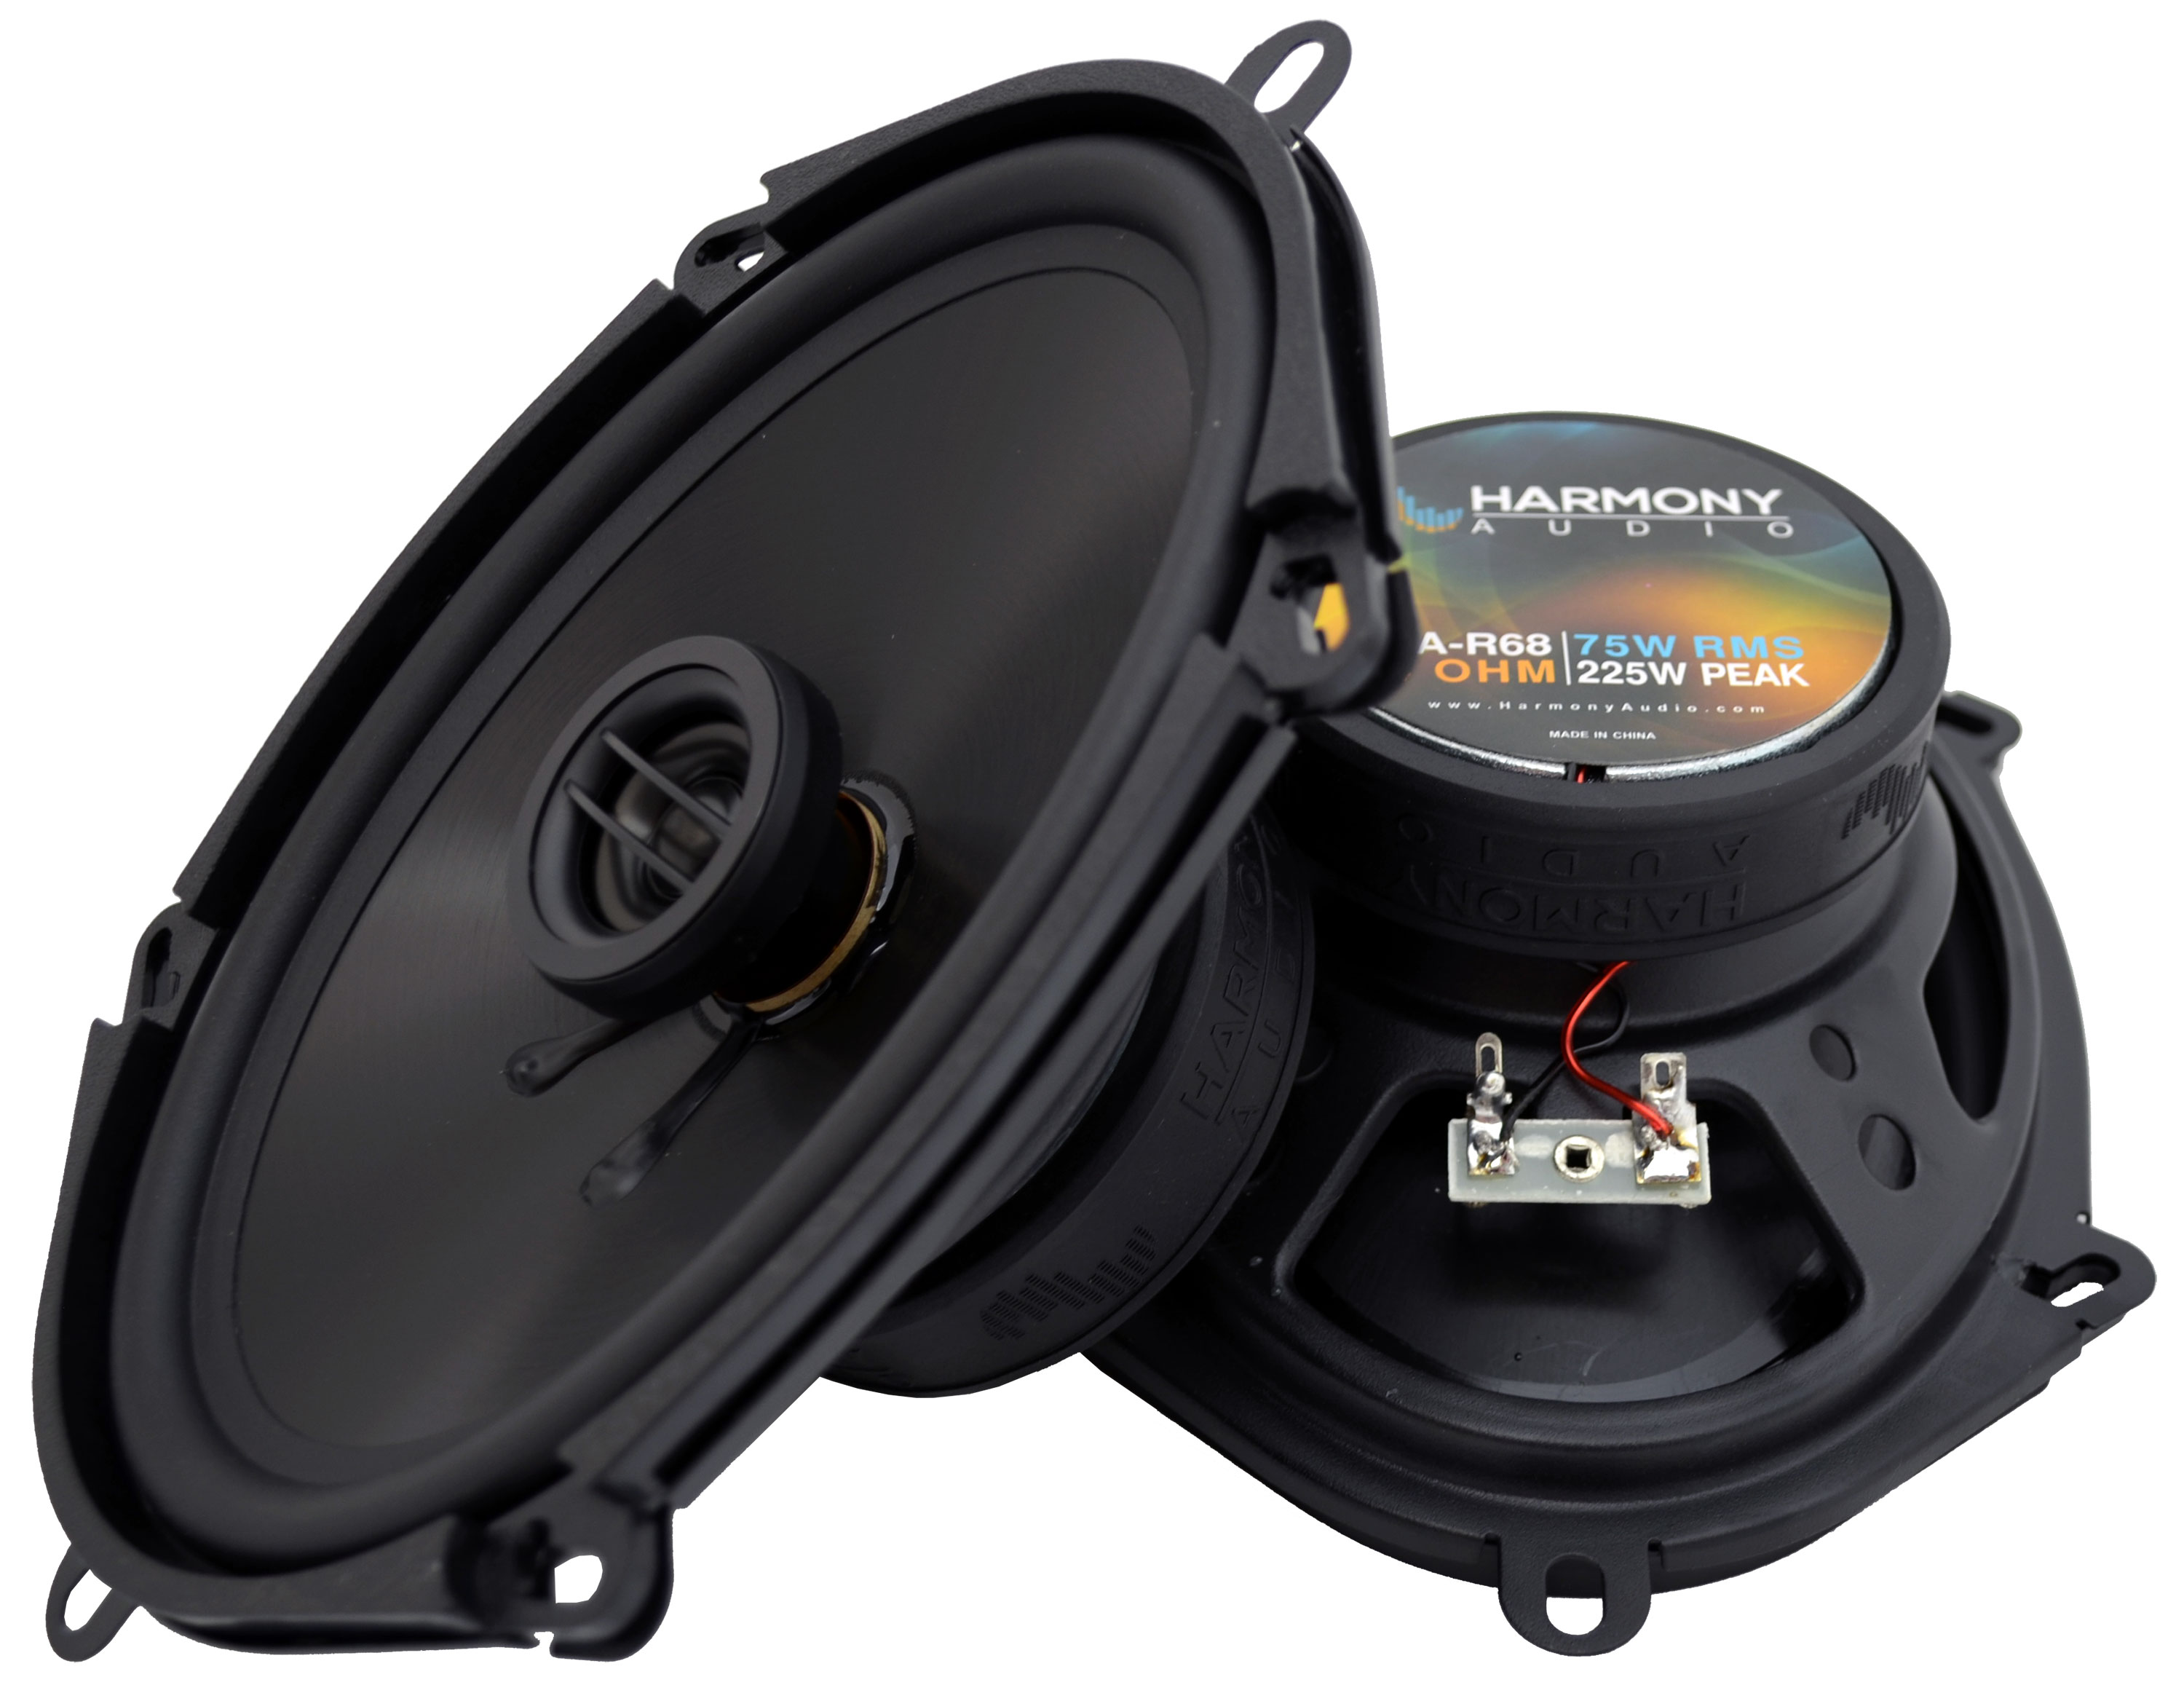 Fits Ford Five Hundred 2005-2007 Rear Door Replacement Harmony HA-R68 Speakers